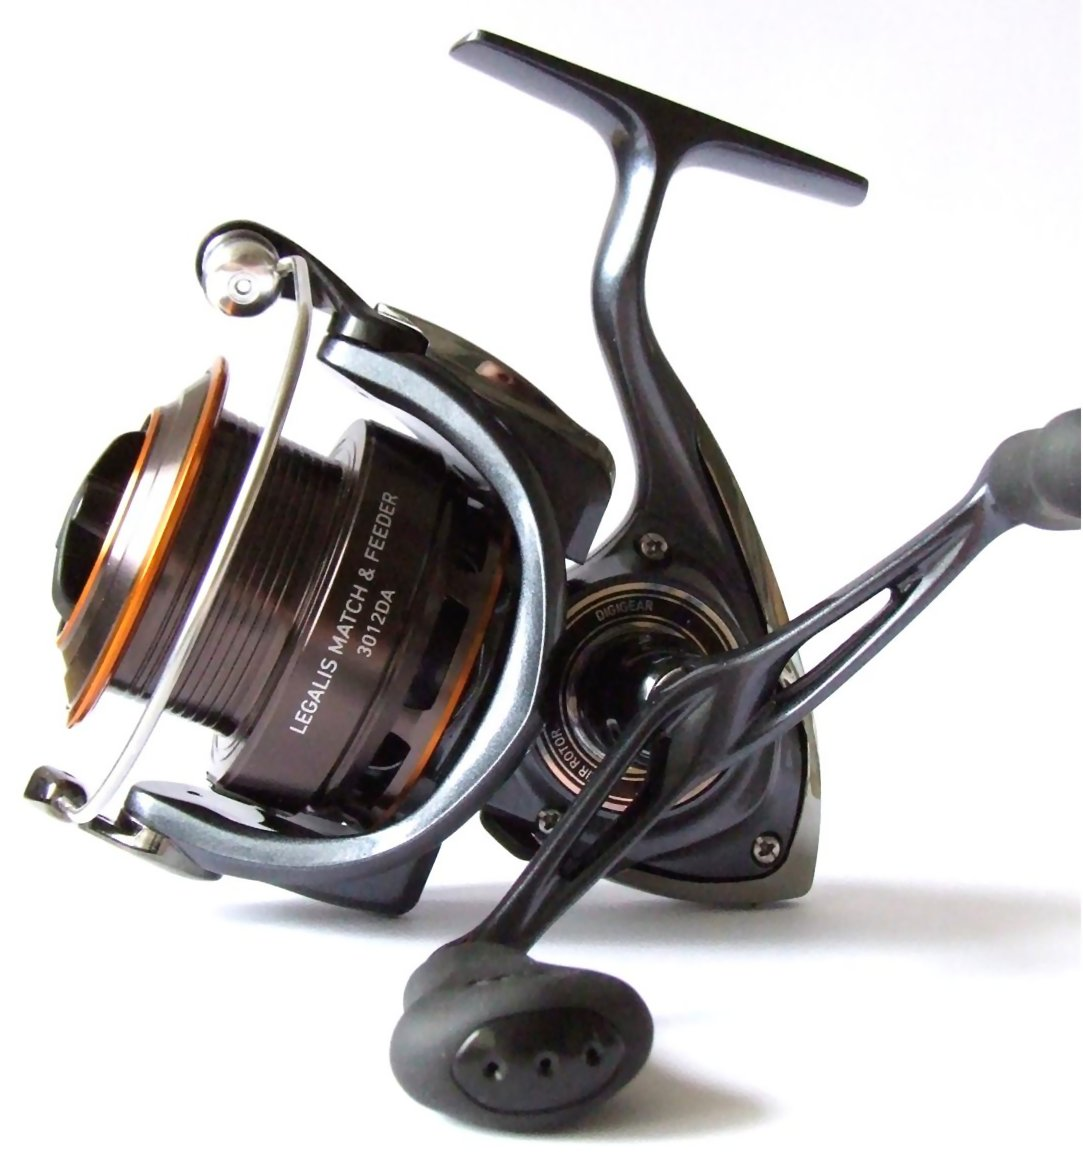 Zebco Bullet Spincast Reel also 131599792090 as well Zebco 733 Saltwater fribGGf pmcYcE C qvbVyj6fvWvakYy ytu3STcIdY besides 8 Must Know Crappie Fishing Techniques together with Daiwa Legalis Match And Feeder Reels. on zebco fishing reel 1